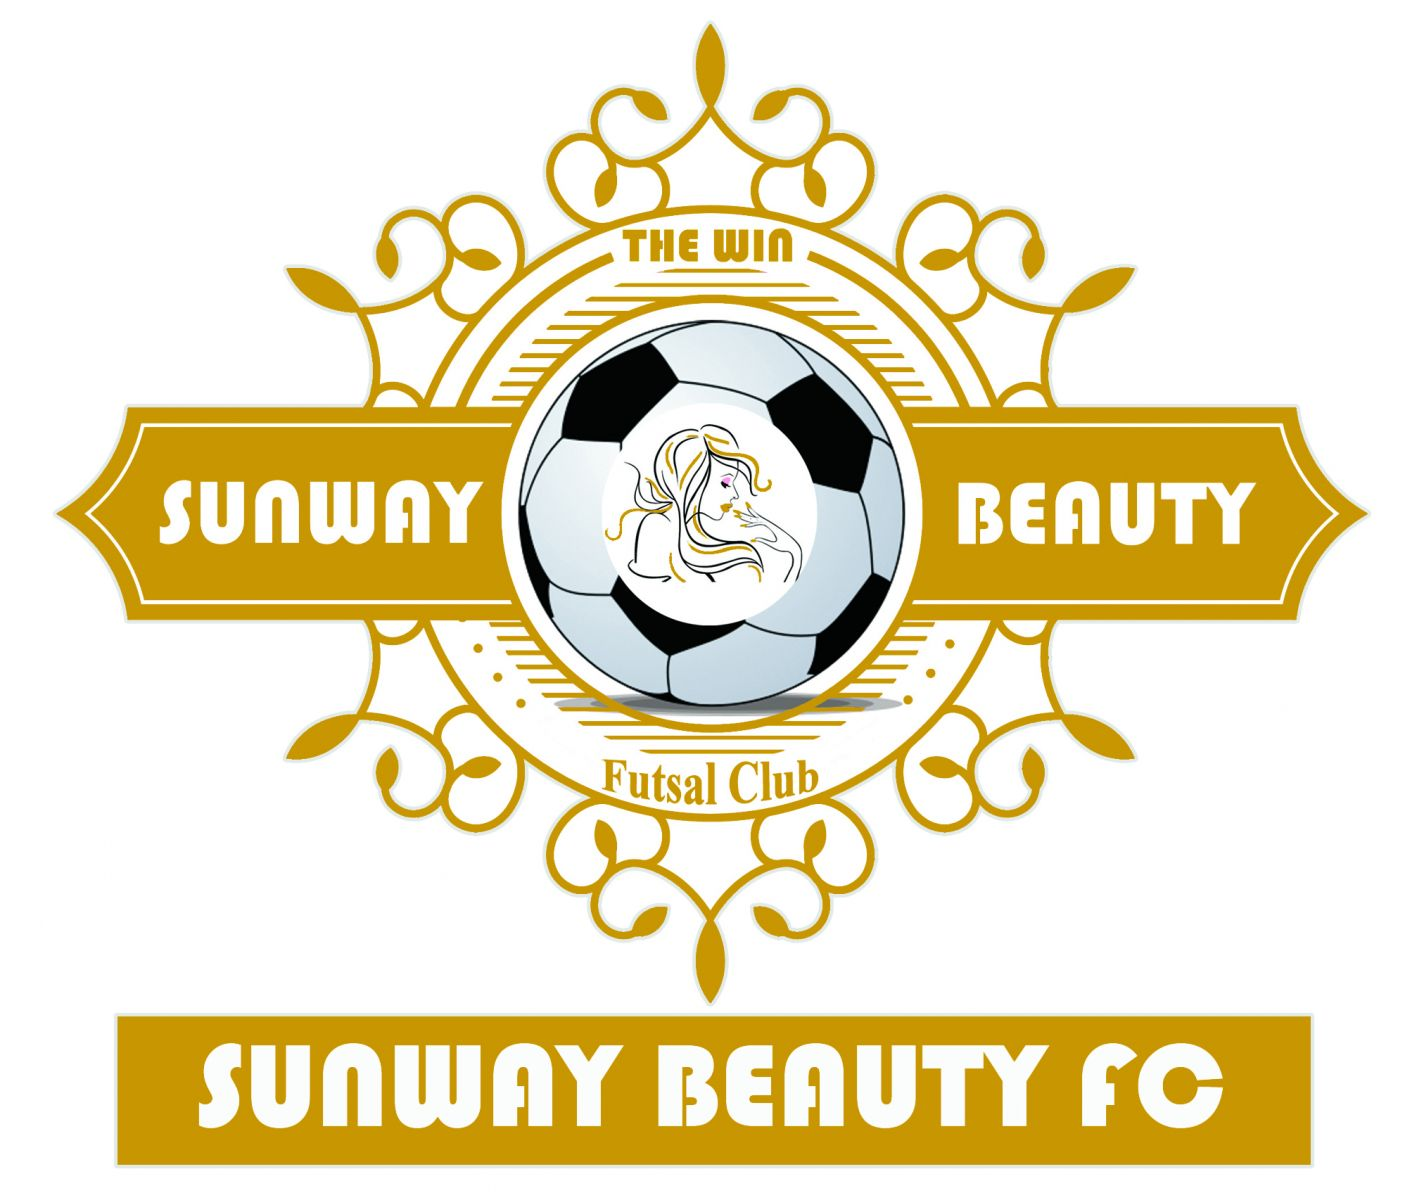 SUNWAY BEAUTY FUTSAL CLUB